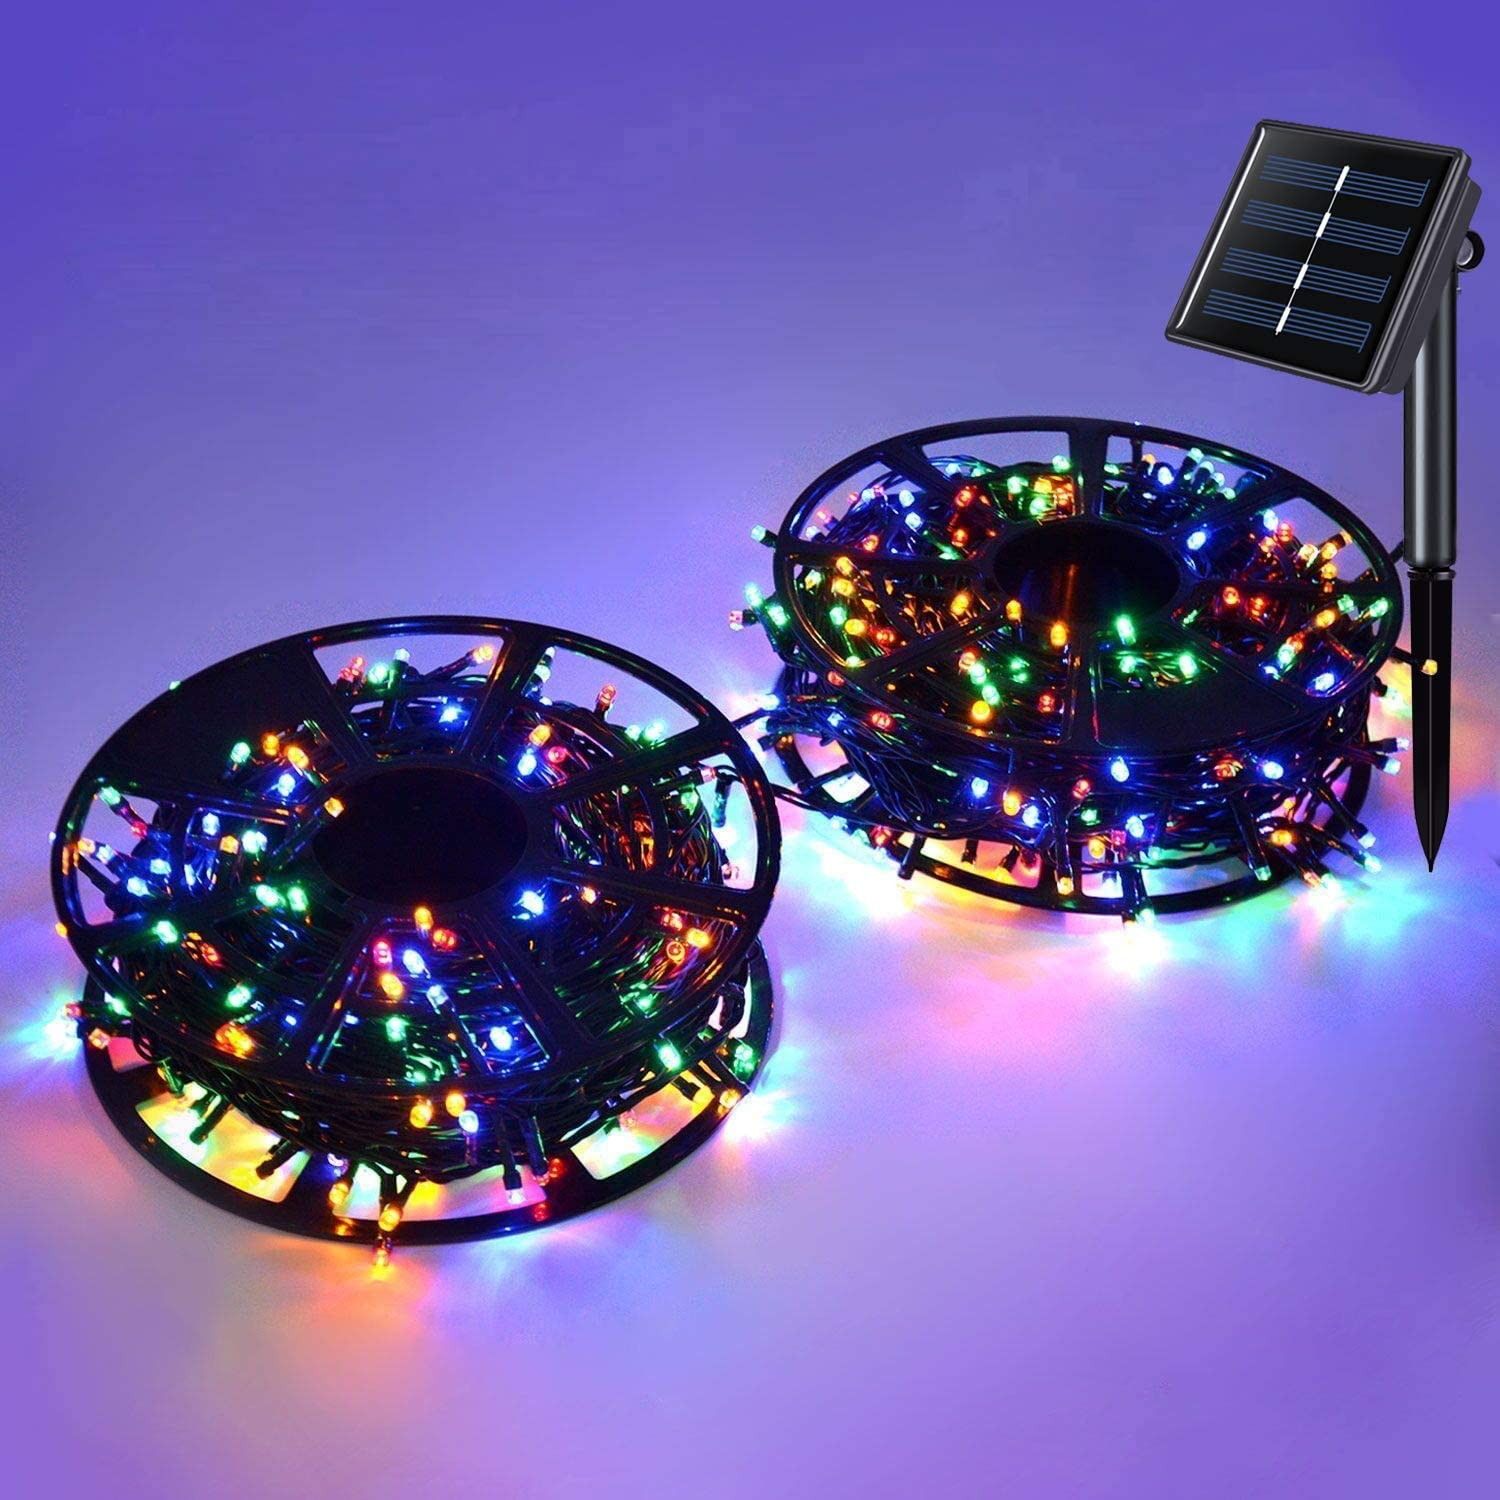 JMEXSUSS Solar String Light 600LED 206.7ft 8 Modes Solar Christmas Lights Waterproof Outdoor Fairy String Lights for Gardens, Homes, Wedding, Party, Christmas Tree,Xams,Outdoors (600LED, Multicolor)